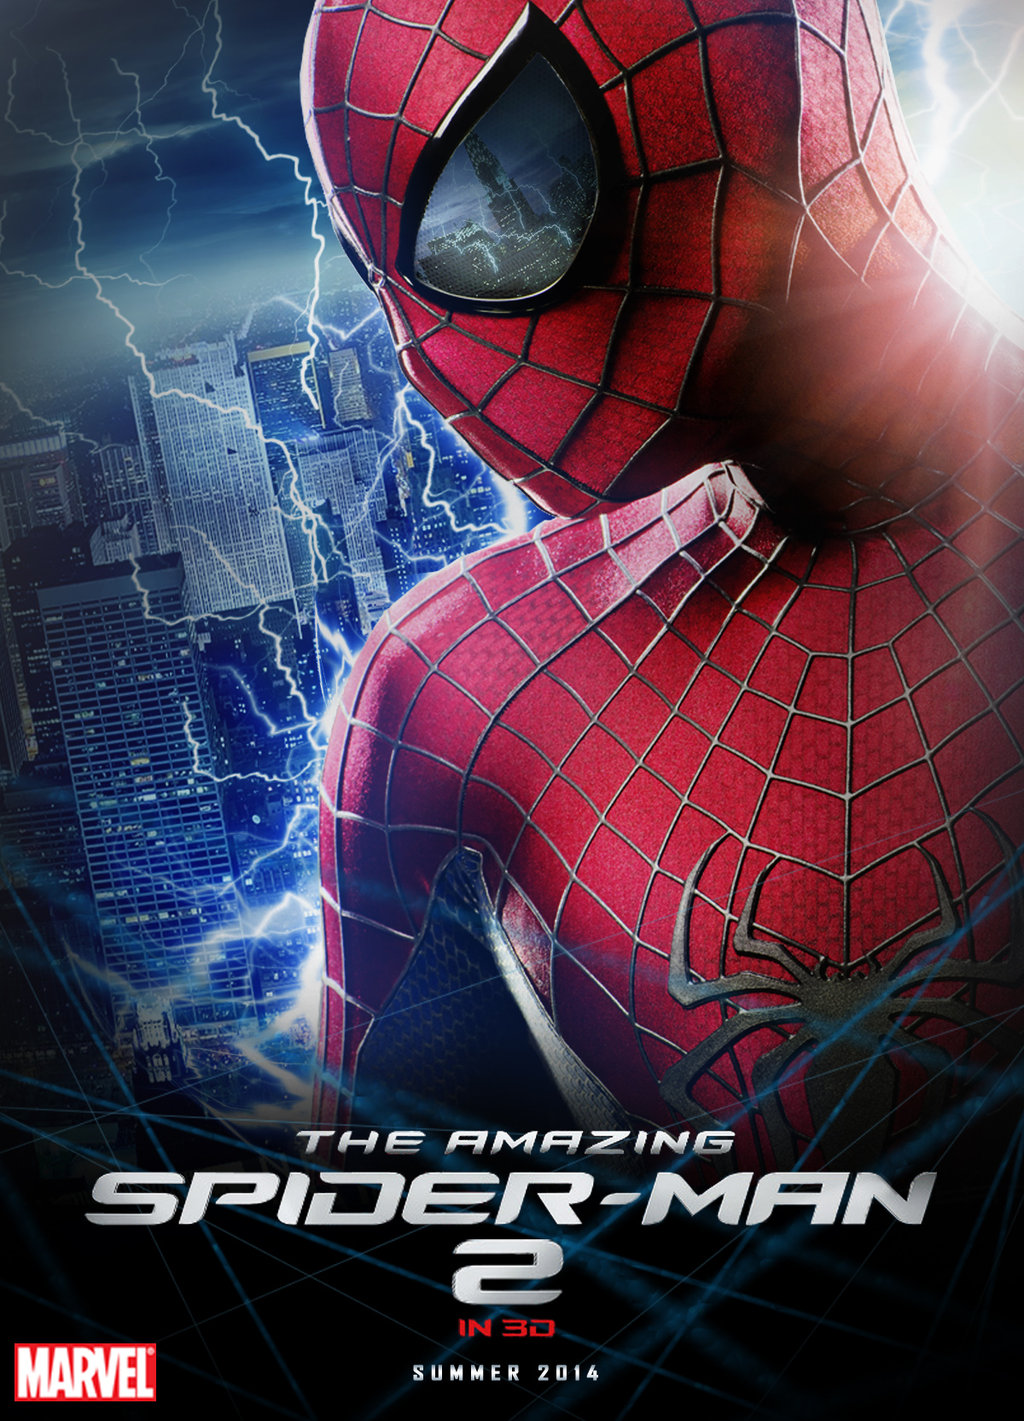 The Amazing Spider Man 2 Poster The Amazing Spider Man Photo 35222109 Fanpop